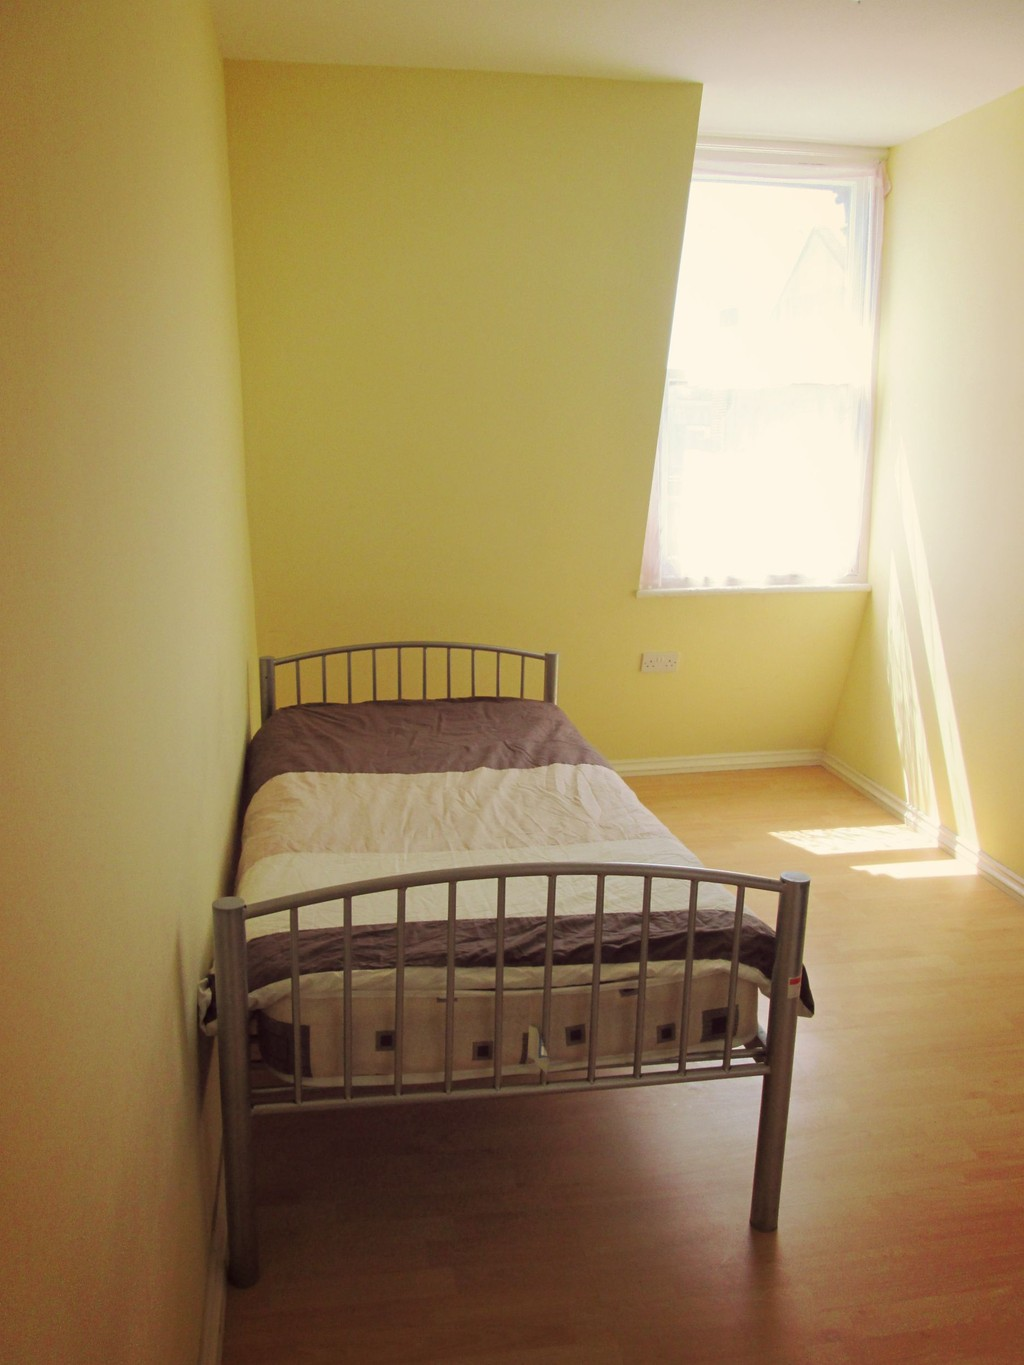 Cheap weekly Rooms to Rent from  90 per week  no Deposit   Londo. Cheap weekly Rooms to Rent from  90 per week  no Deposit   London